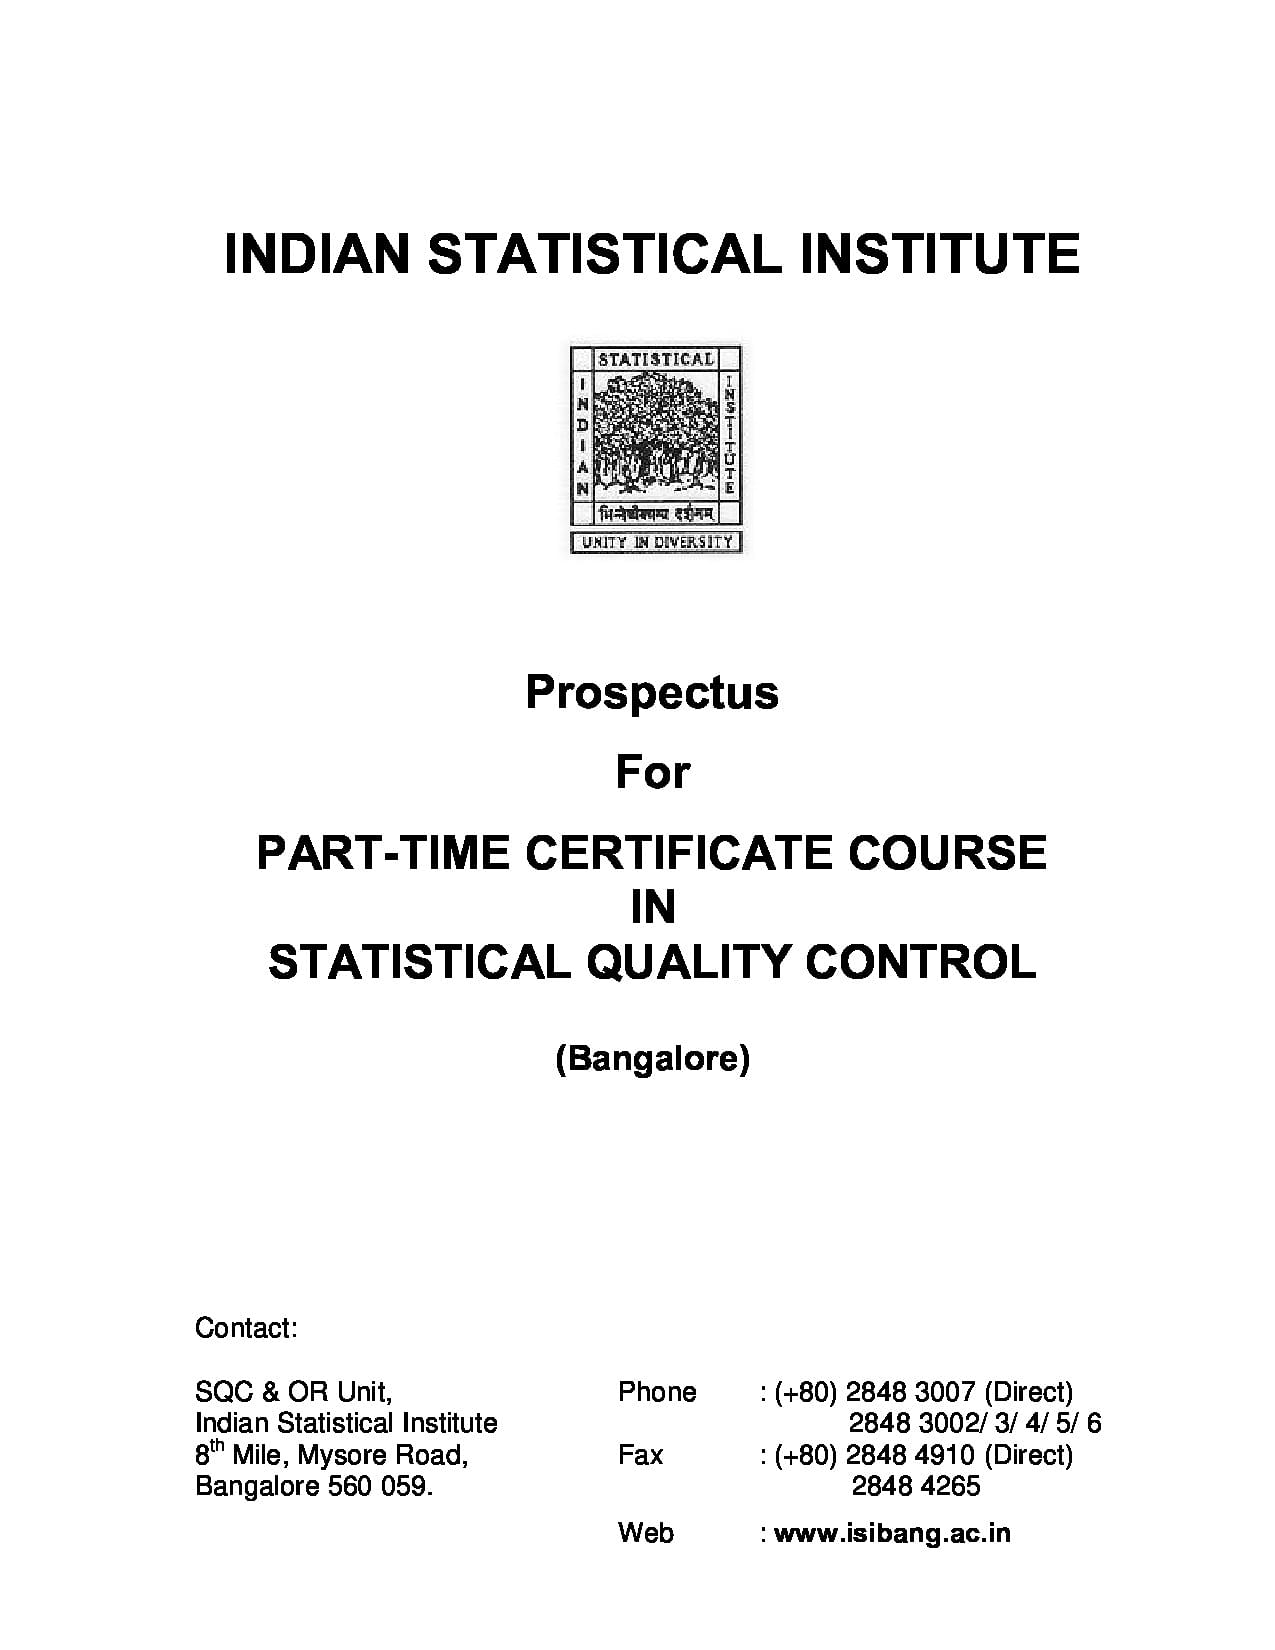 Indian statistical institute isi mumbai admissions contact indian statistical institute isi mumbai prospectus image 1 1betcityfo Image collections